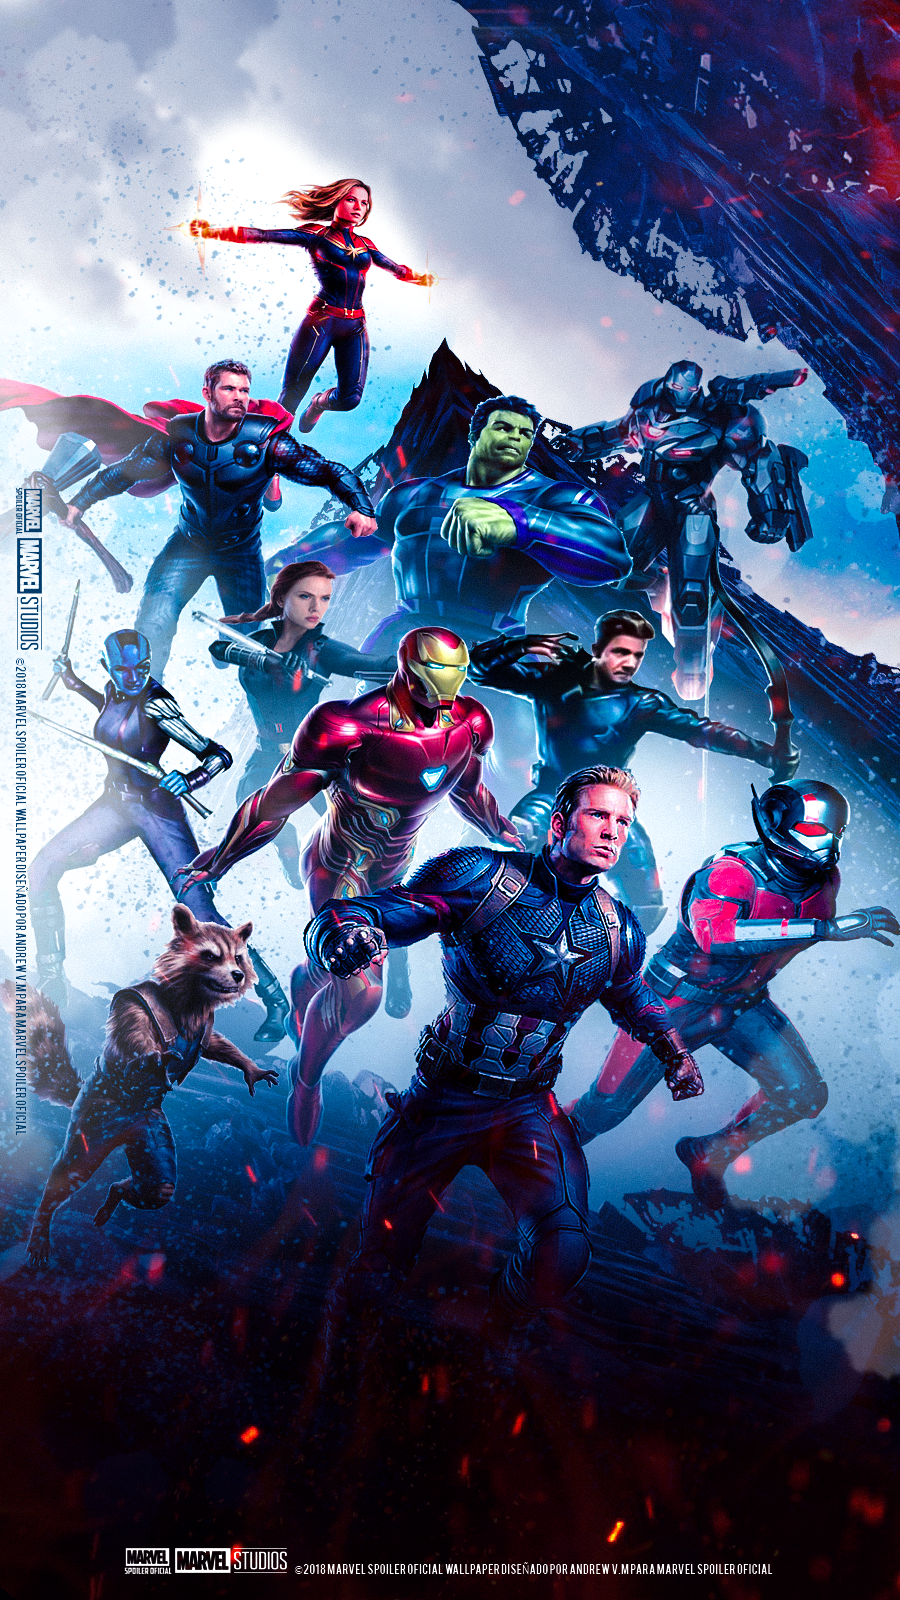 Avengers Endgame Poster Wallpaper Full Movie 2019 900x1600